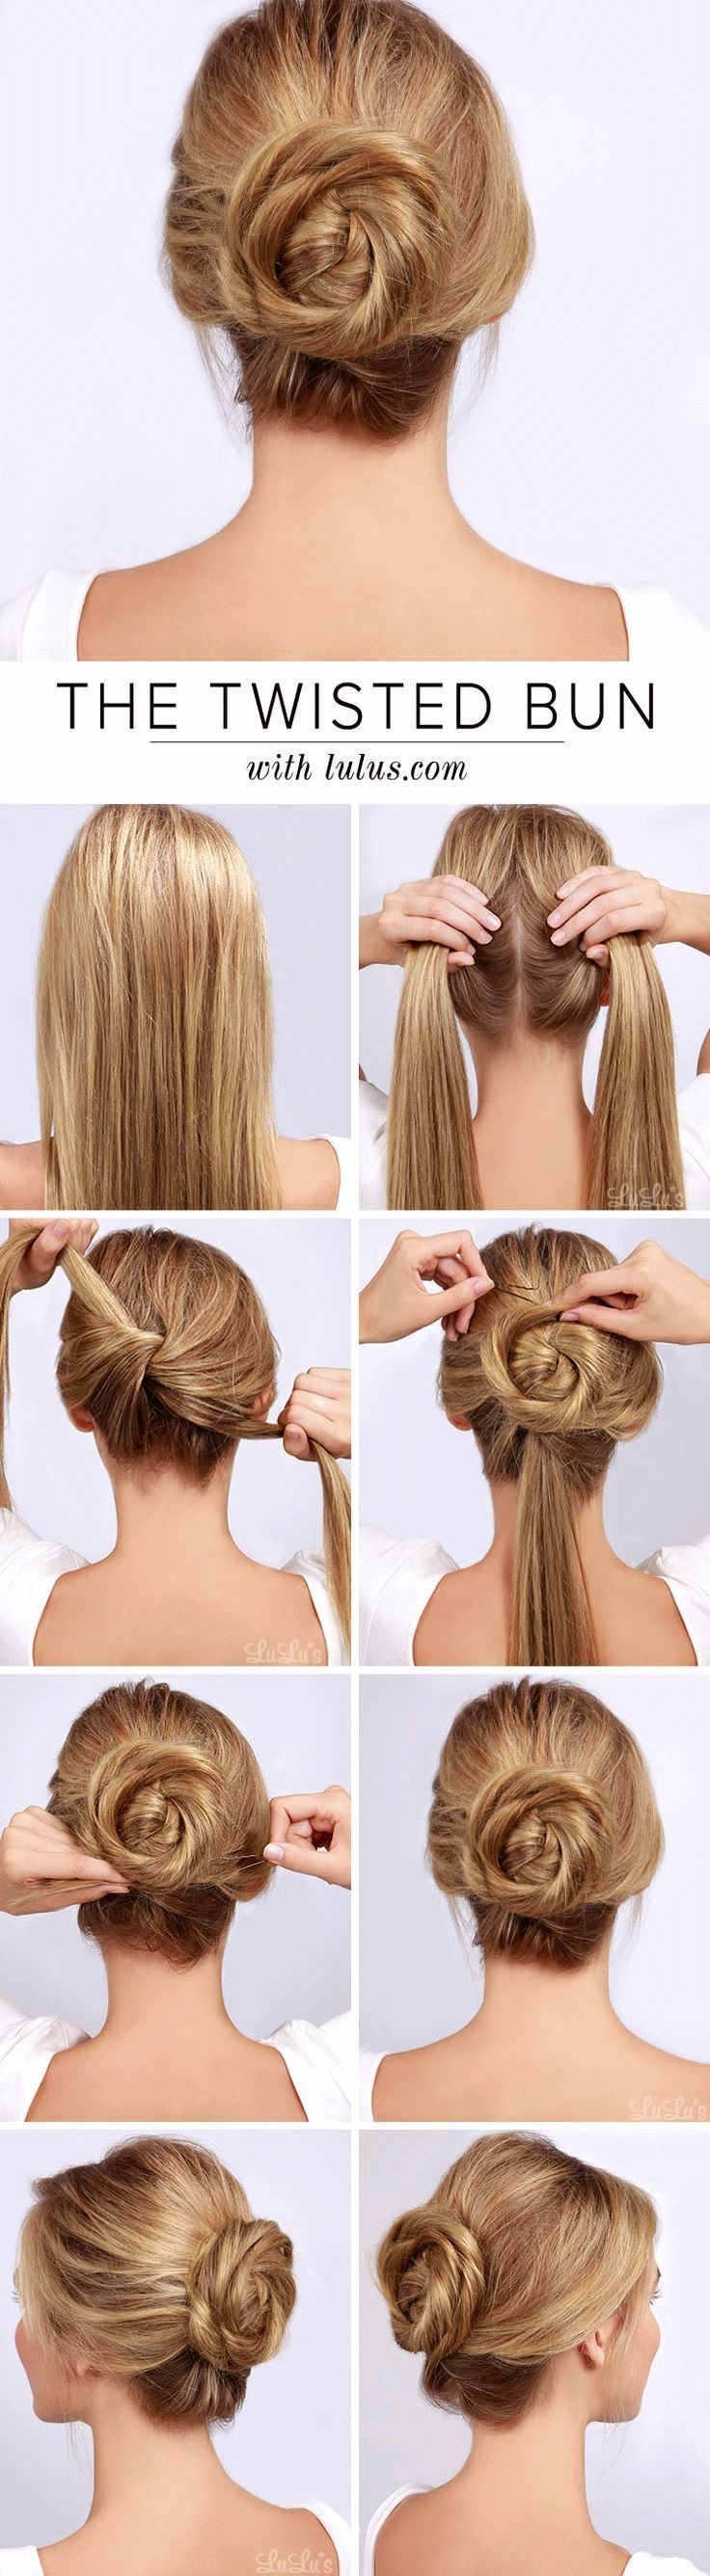 20 best Easy Travel Hairstyles images on Pinterest